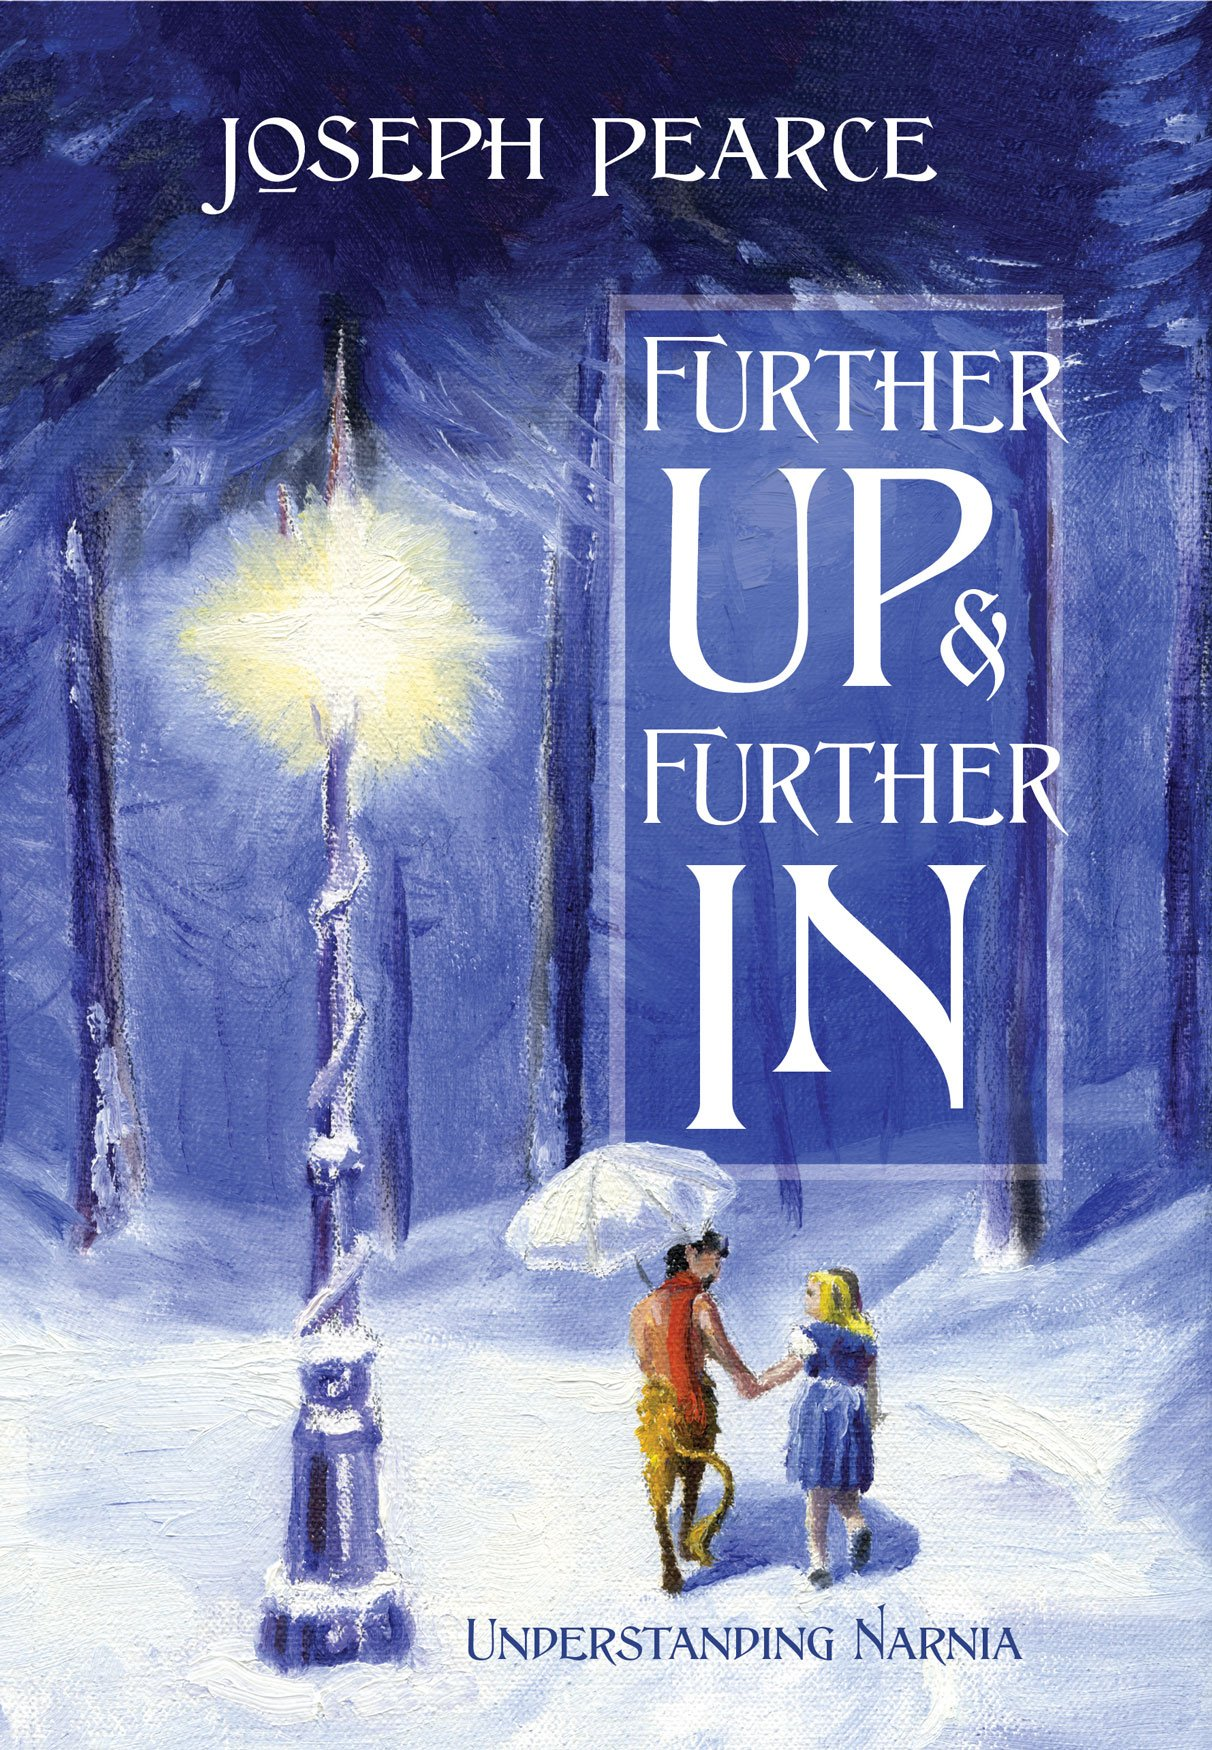 Amazon.com: Further Up & Further In: Understanding Narnia (9781505108668):  Joseph Pearce: Books